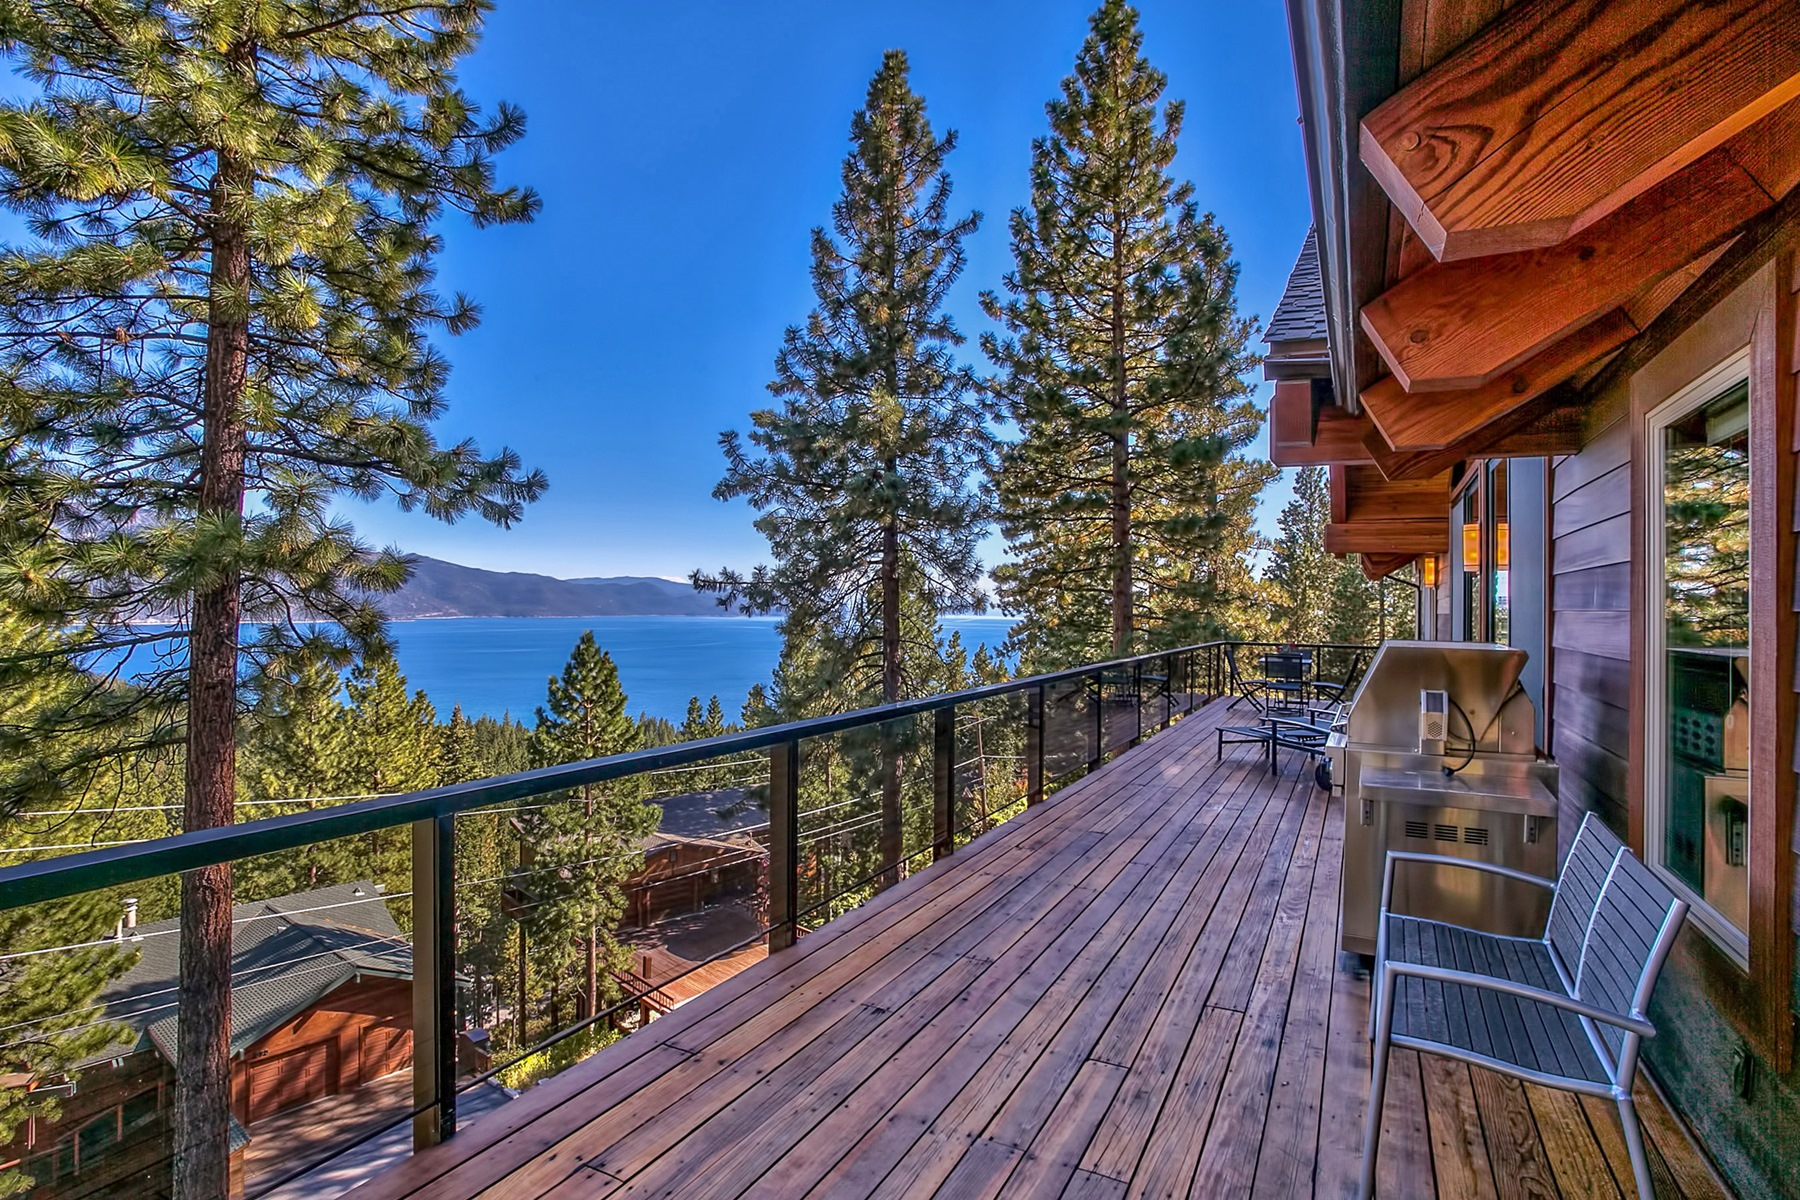 Single Family Home for Sale at 569 Alden Incline Village, Nevada, 89451 Lake Tahoe, United States